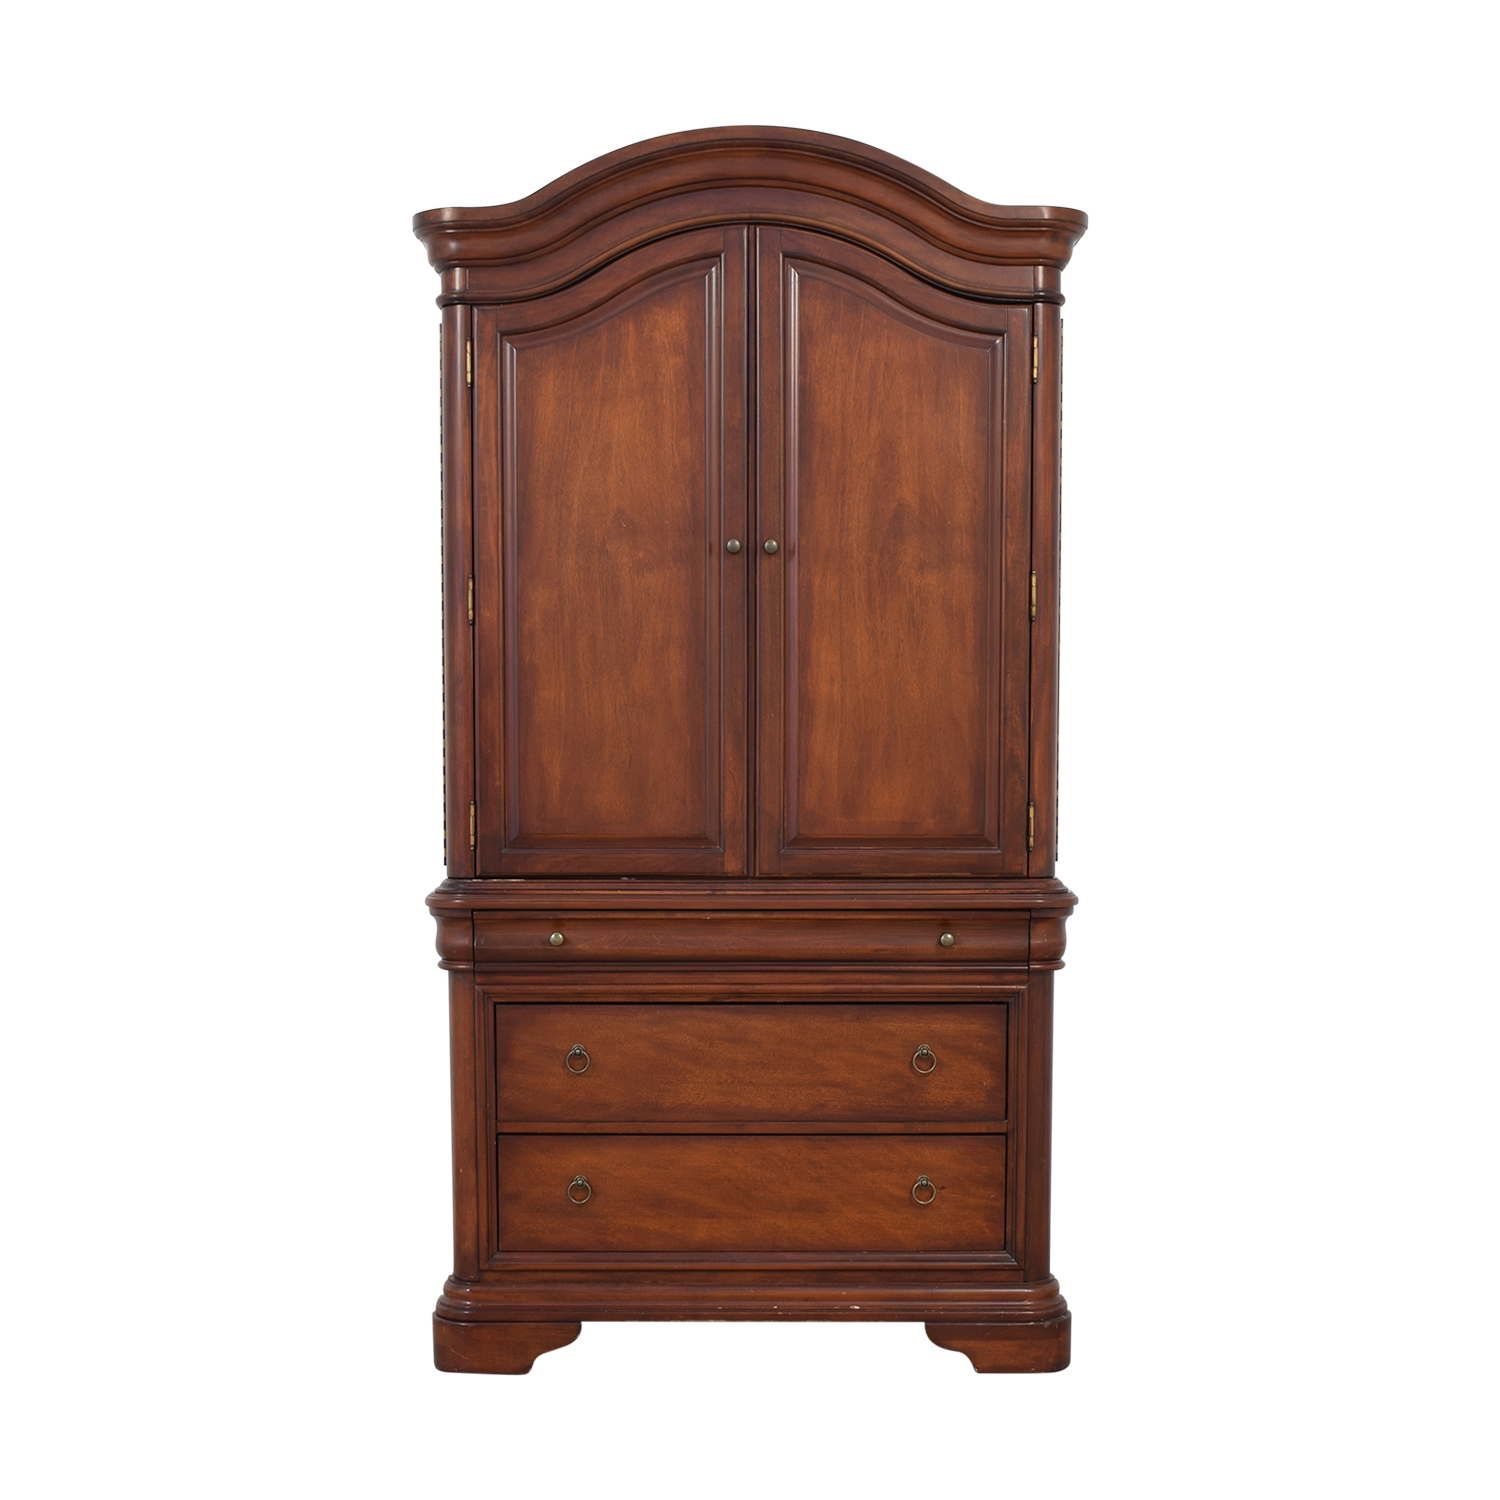 Macy's Macy's Four-Drawer Bordeaux TV Armoire second hand